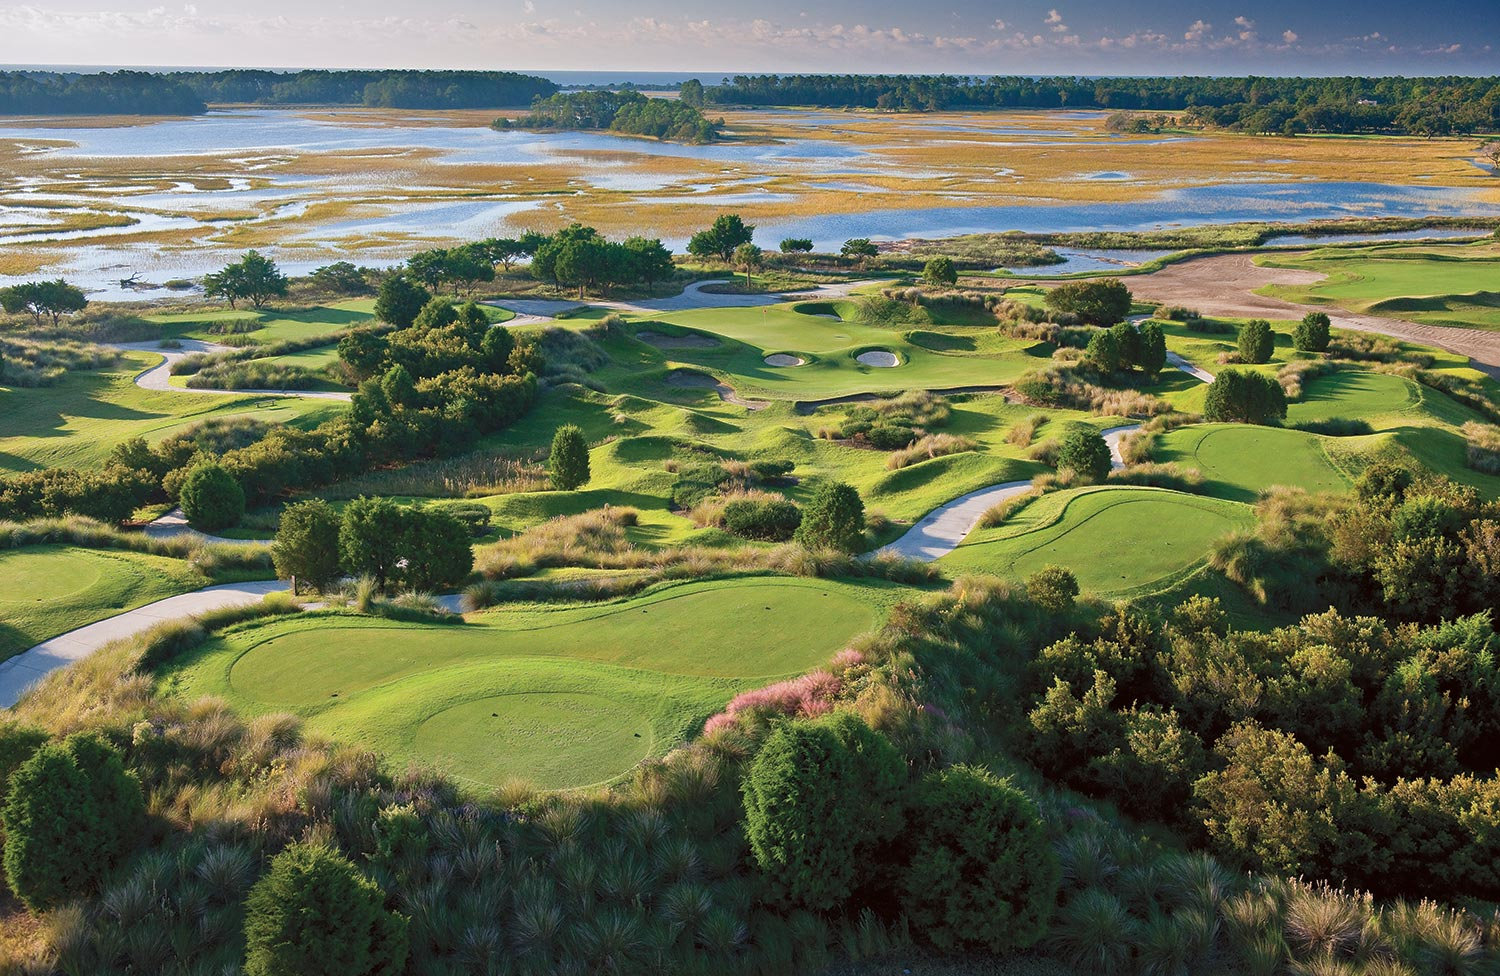 Aerial view of the Cassique golf course on Kiawah Island, SC